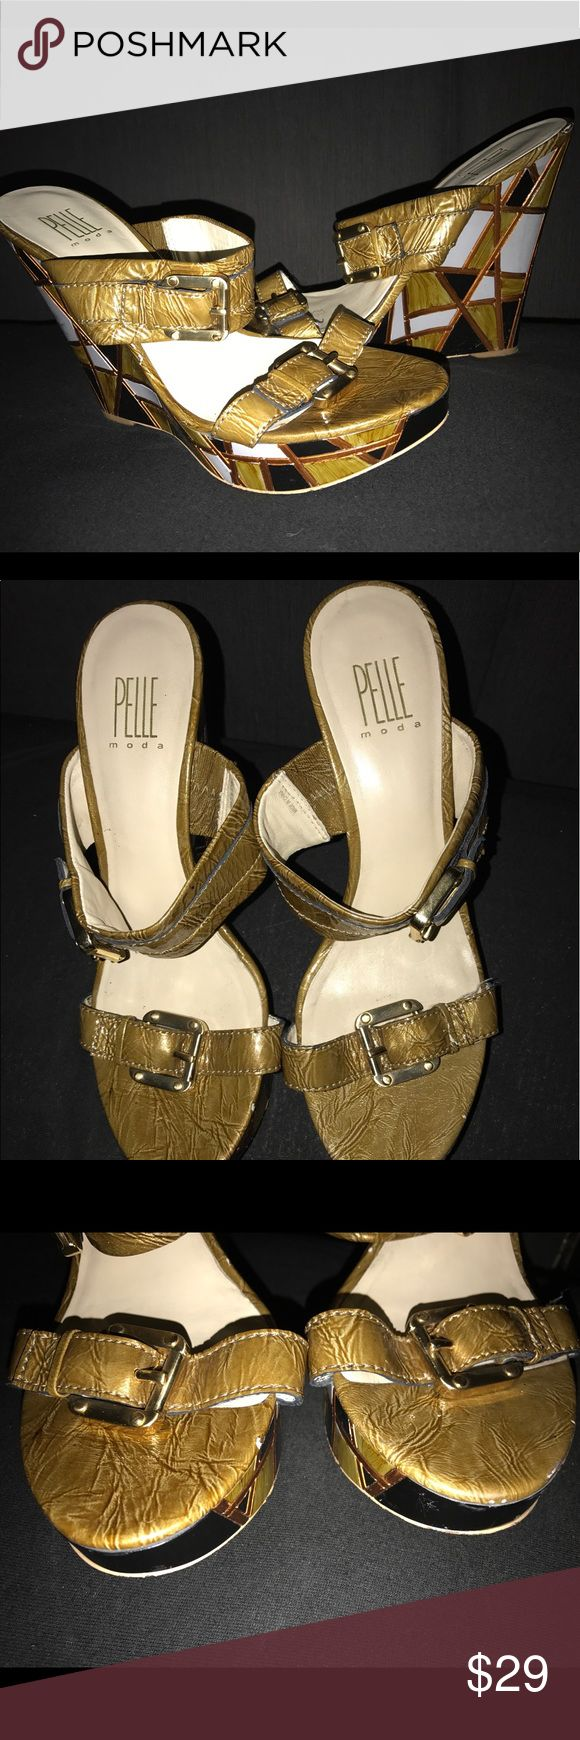 Pelle Moda Plataform Pelle Moda slide platform wedge with graphics design on the heels  size 9. A little be use but in good conditions. Accepting offers! 🎉 Pelle Moda Shoes Platforms